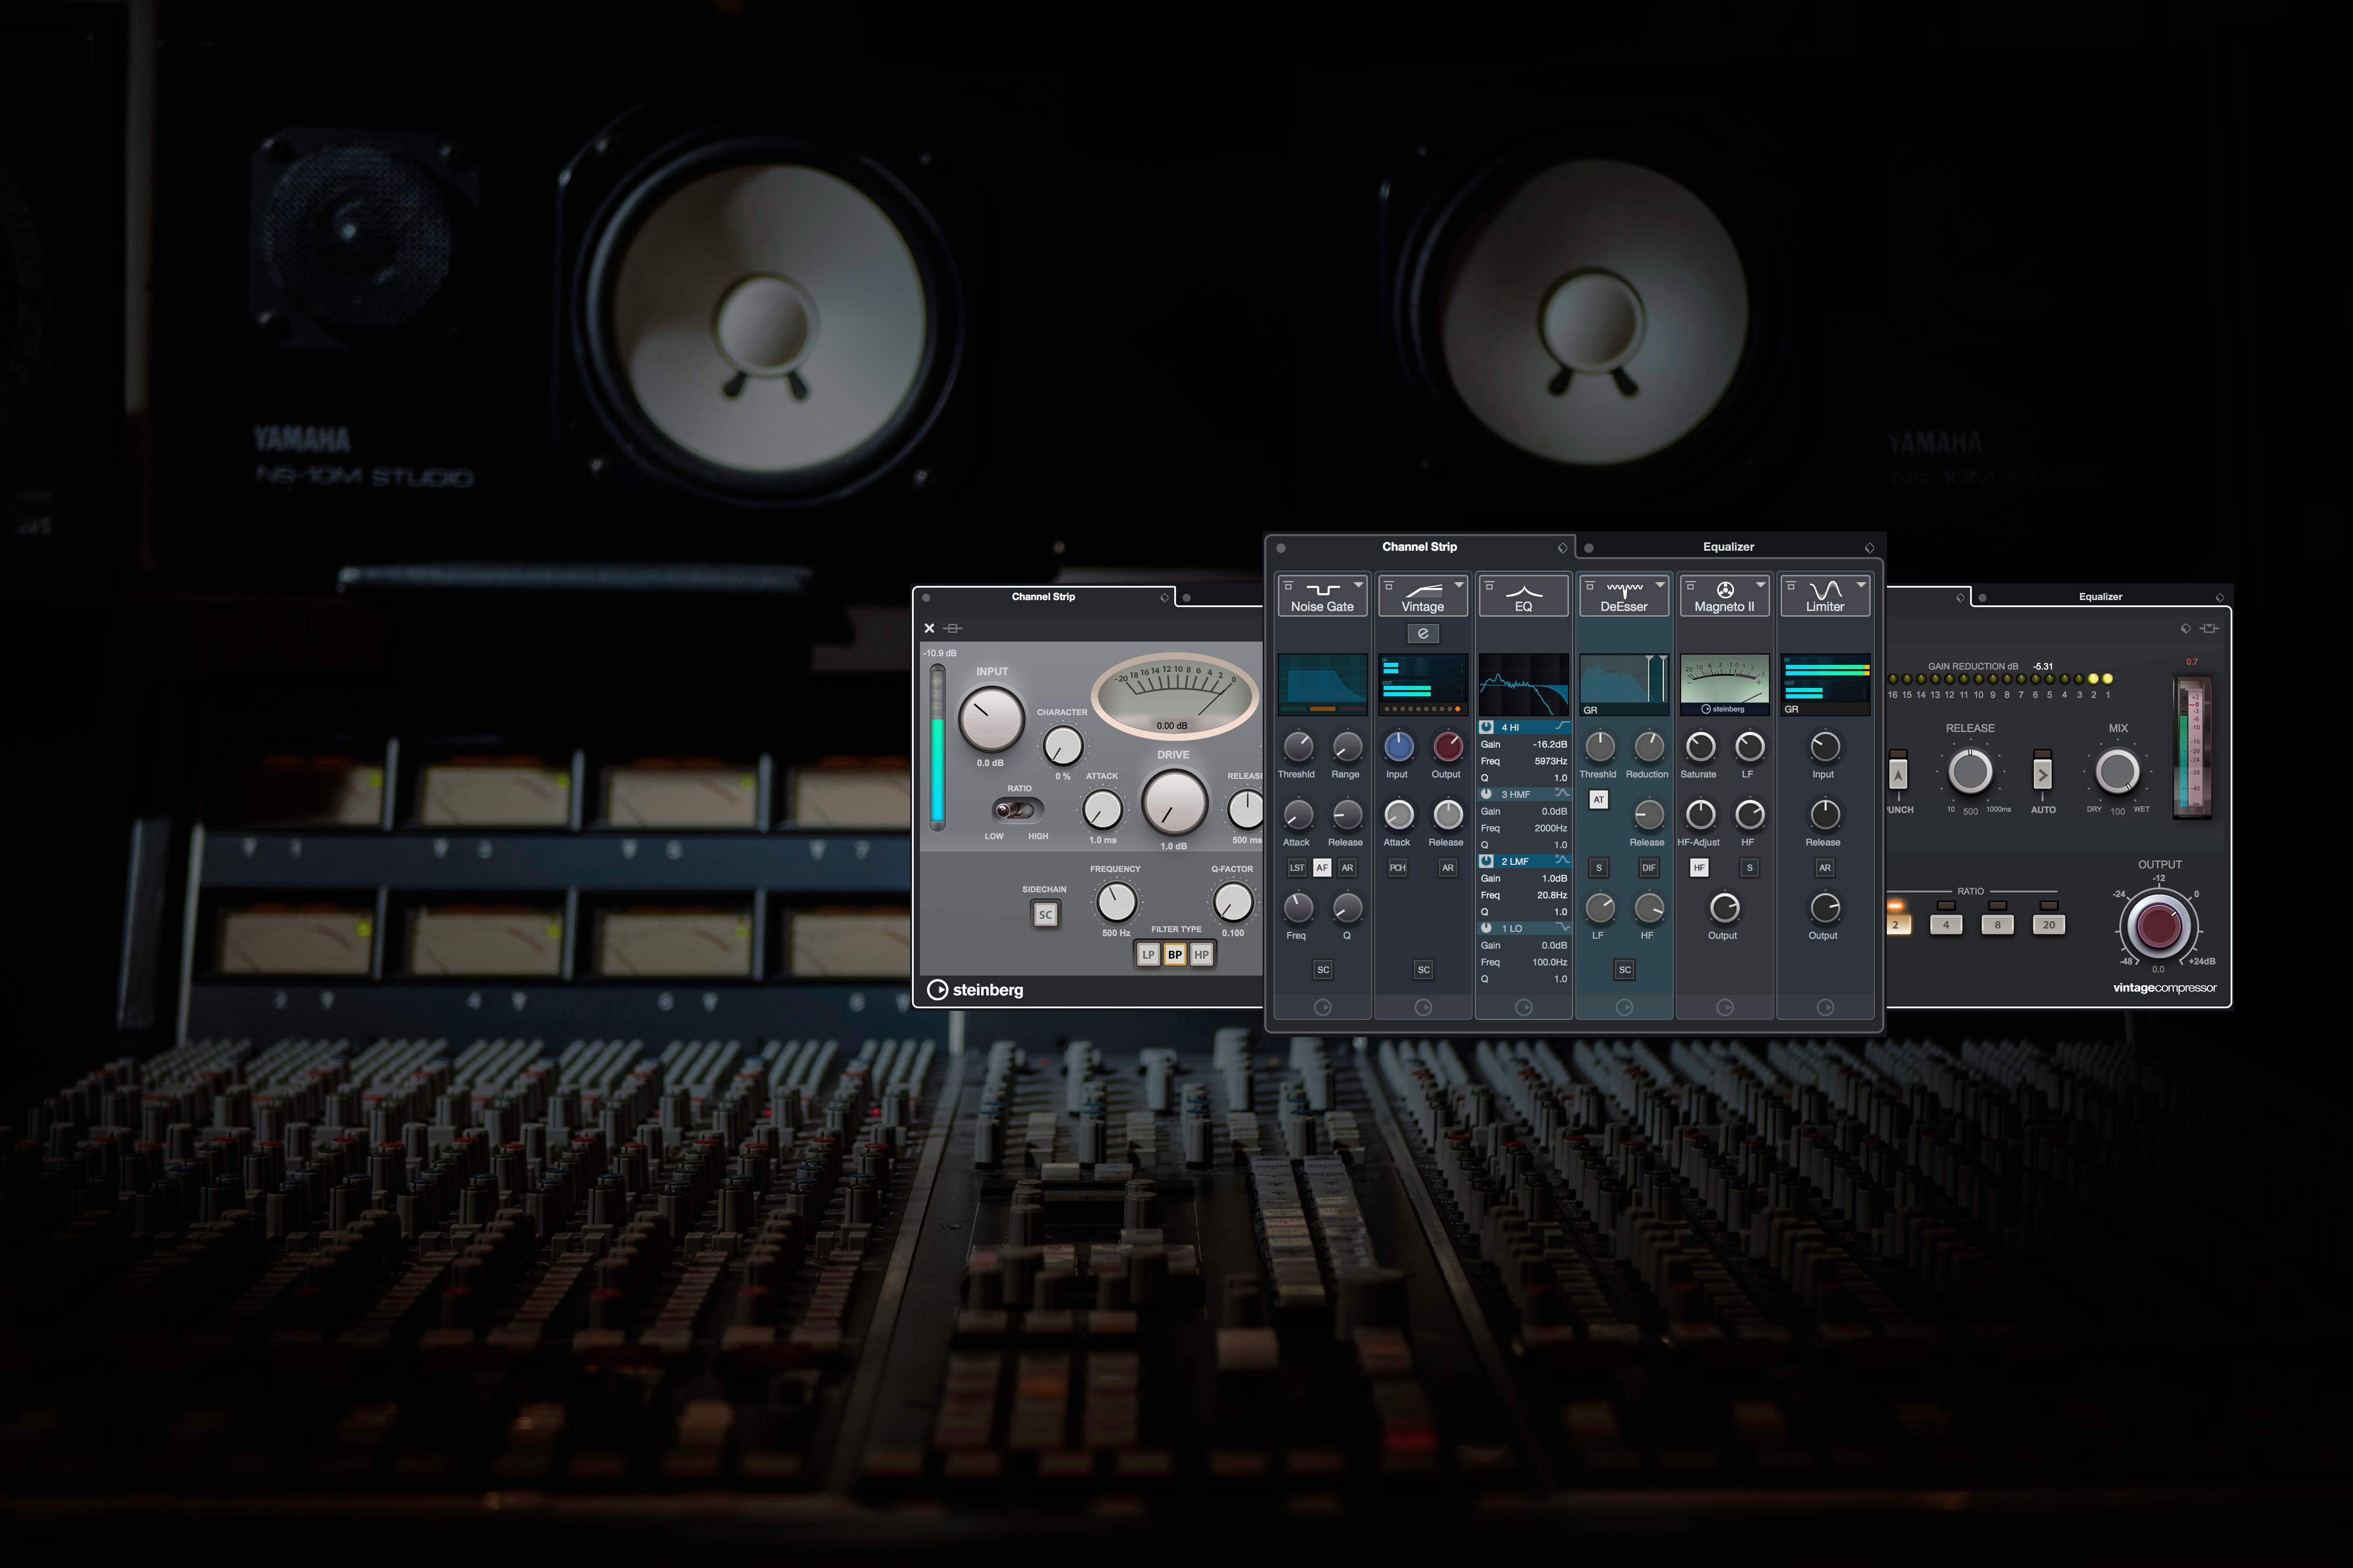 New in Cubase 10: The next generation DAW | Steinberg